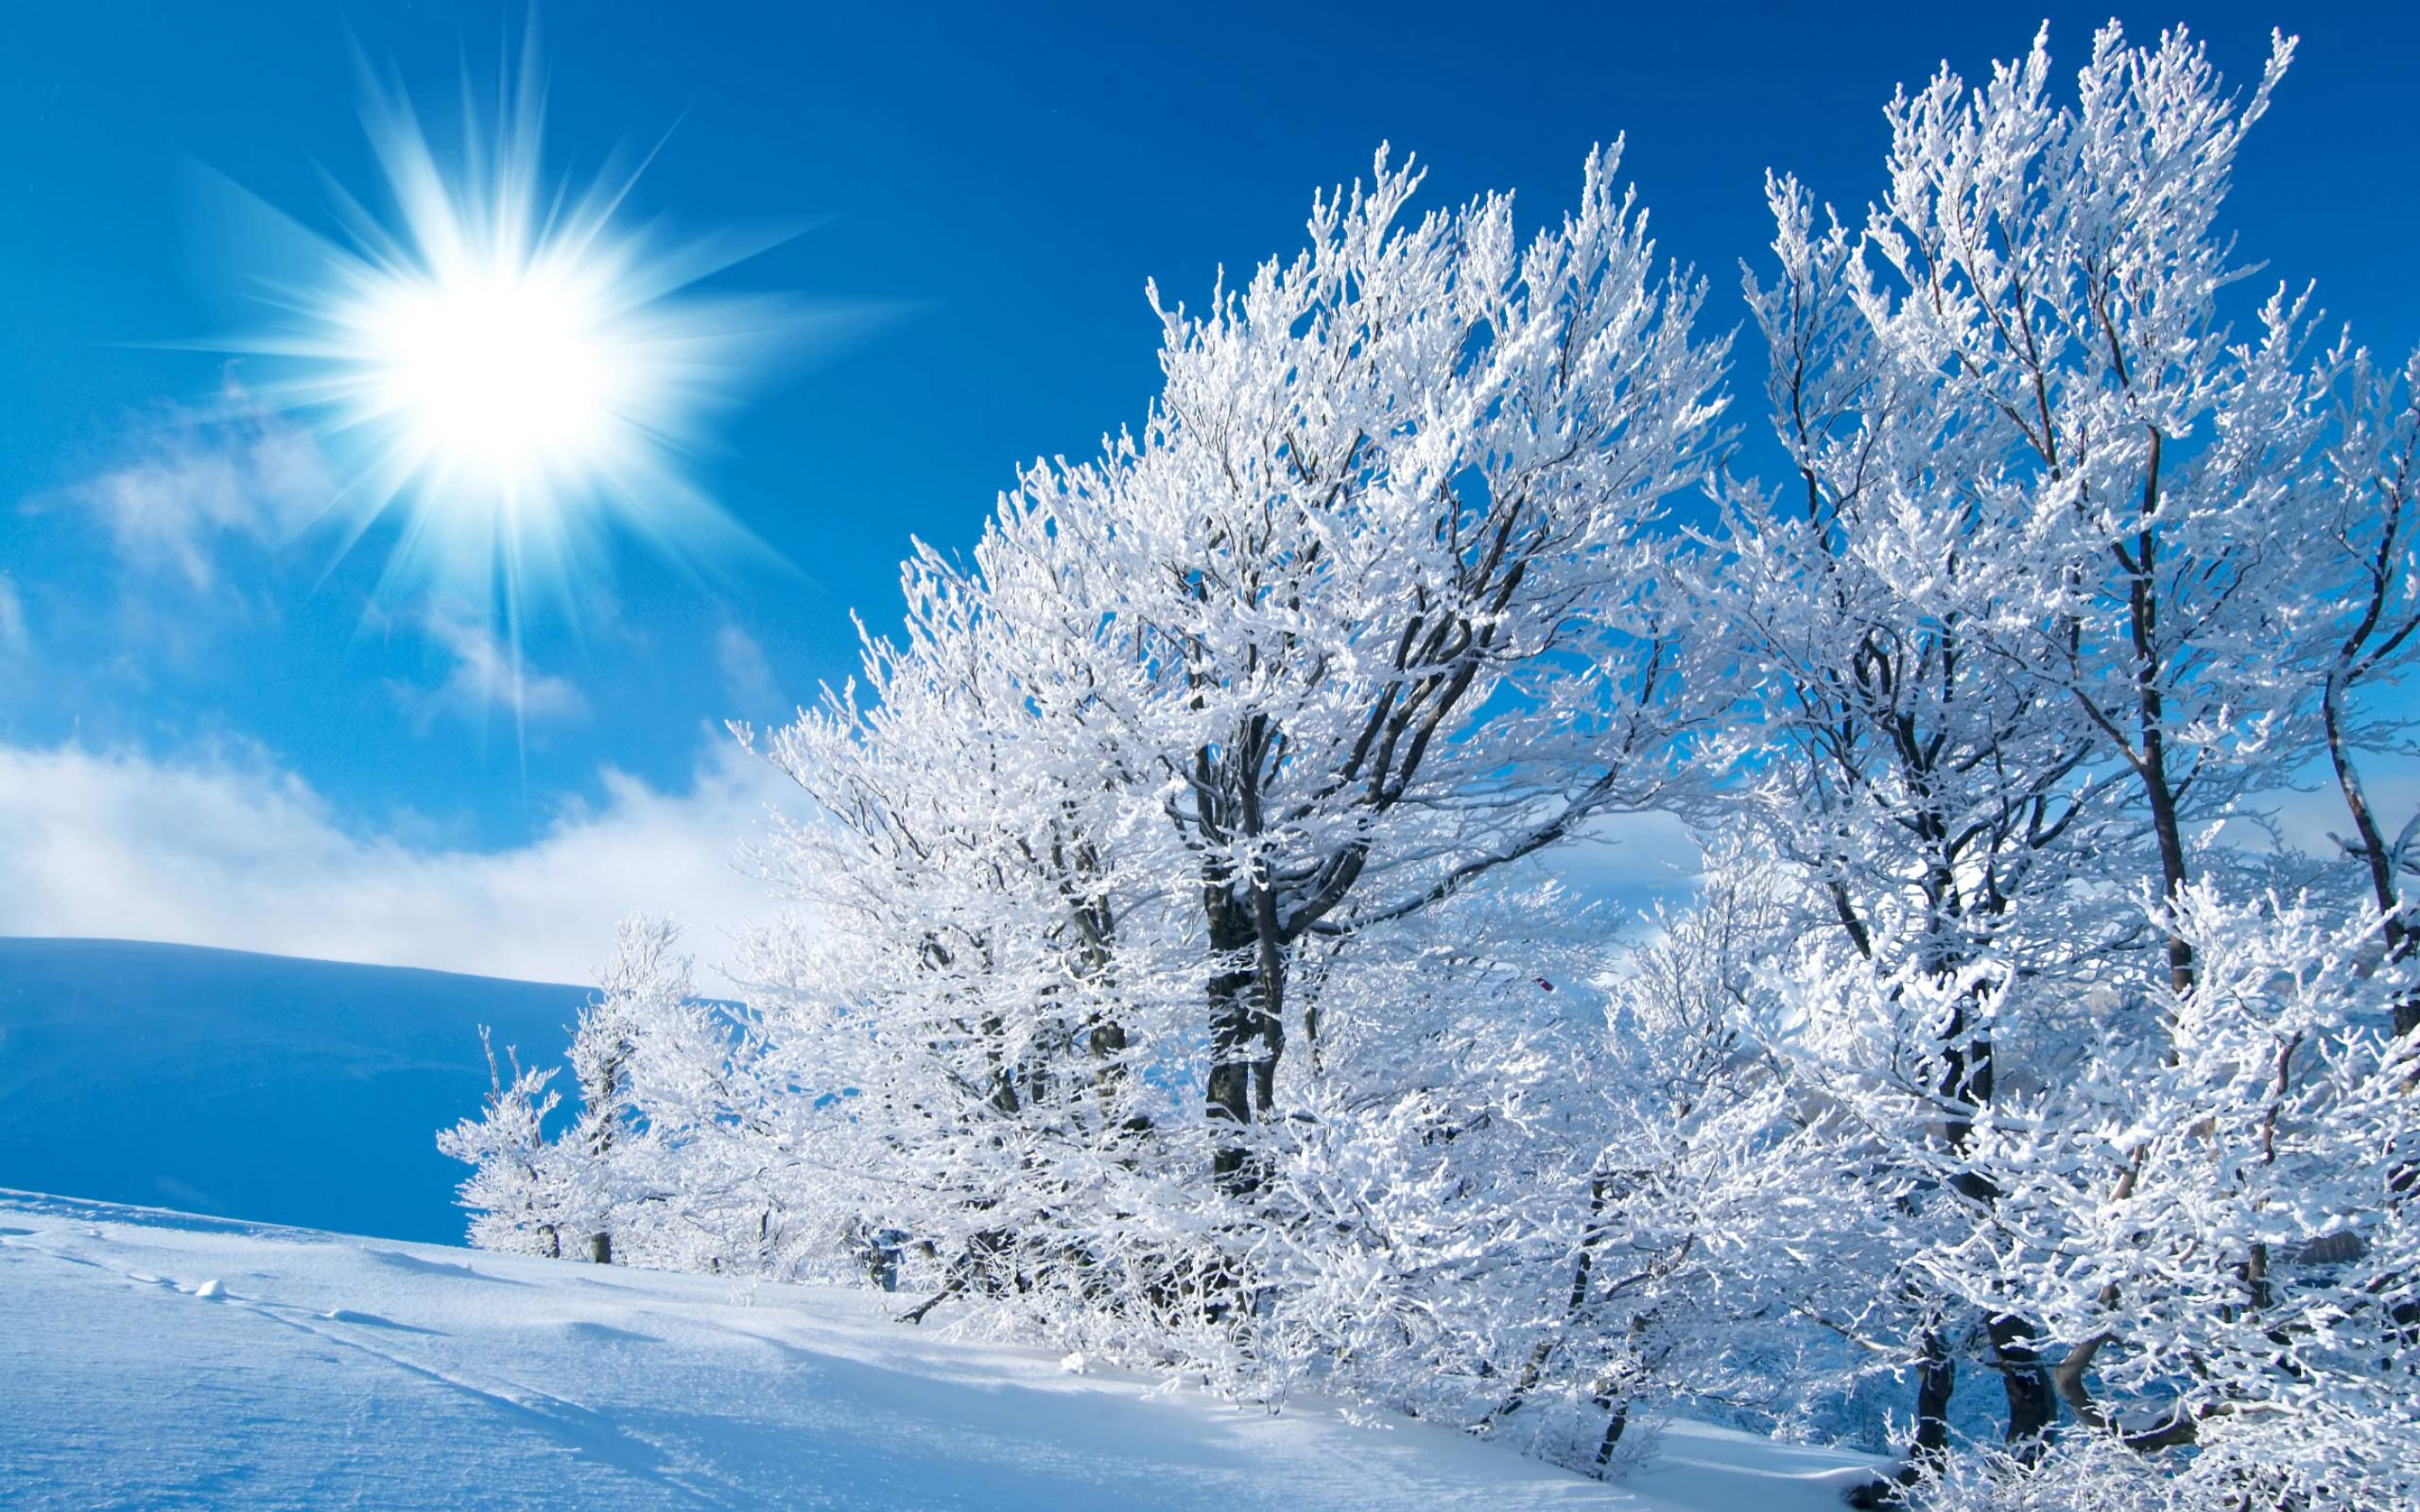 Nature Winter Wallpapers - Wallpaper Cave